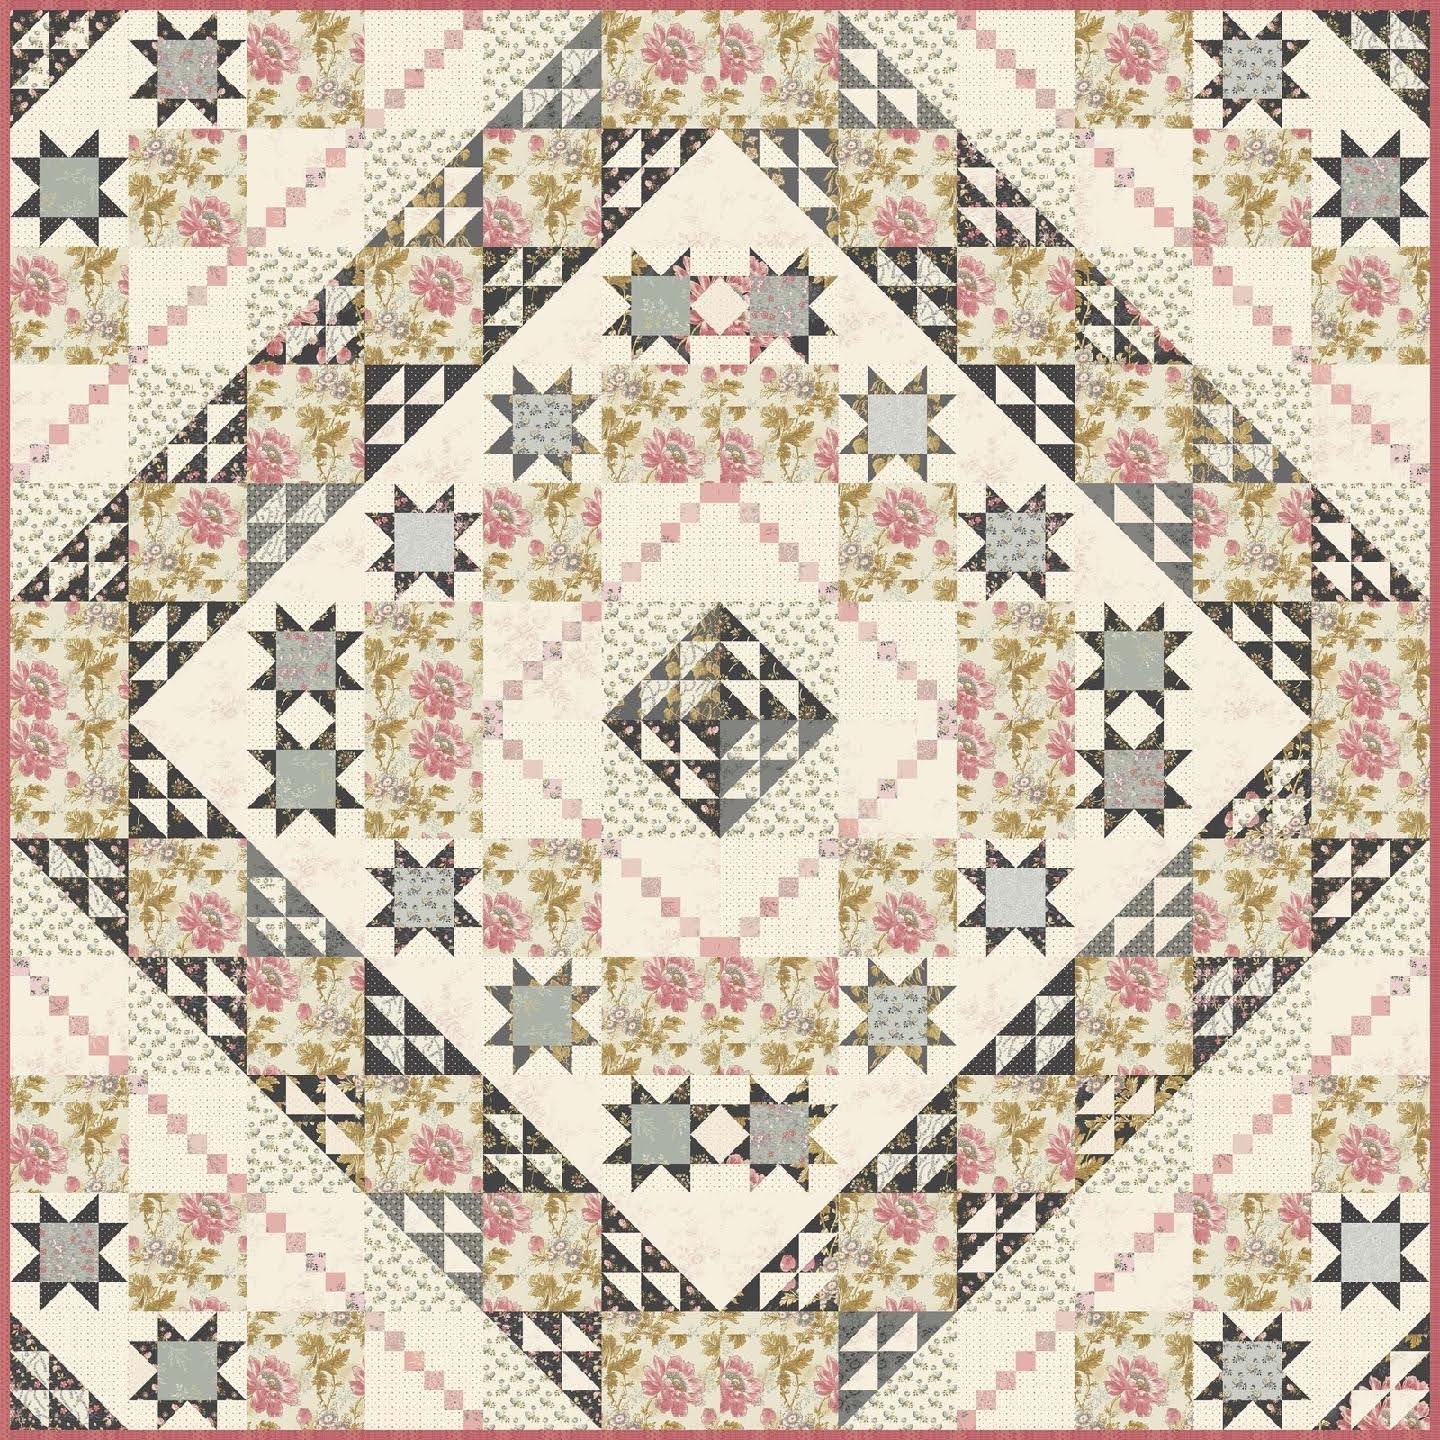 *Pre-Order* Sweet Pea Quilt Kit featuring Moonstone by Laundry Basket Quilts